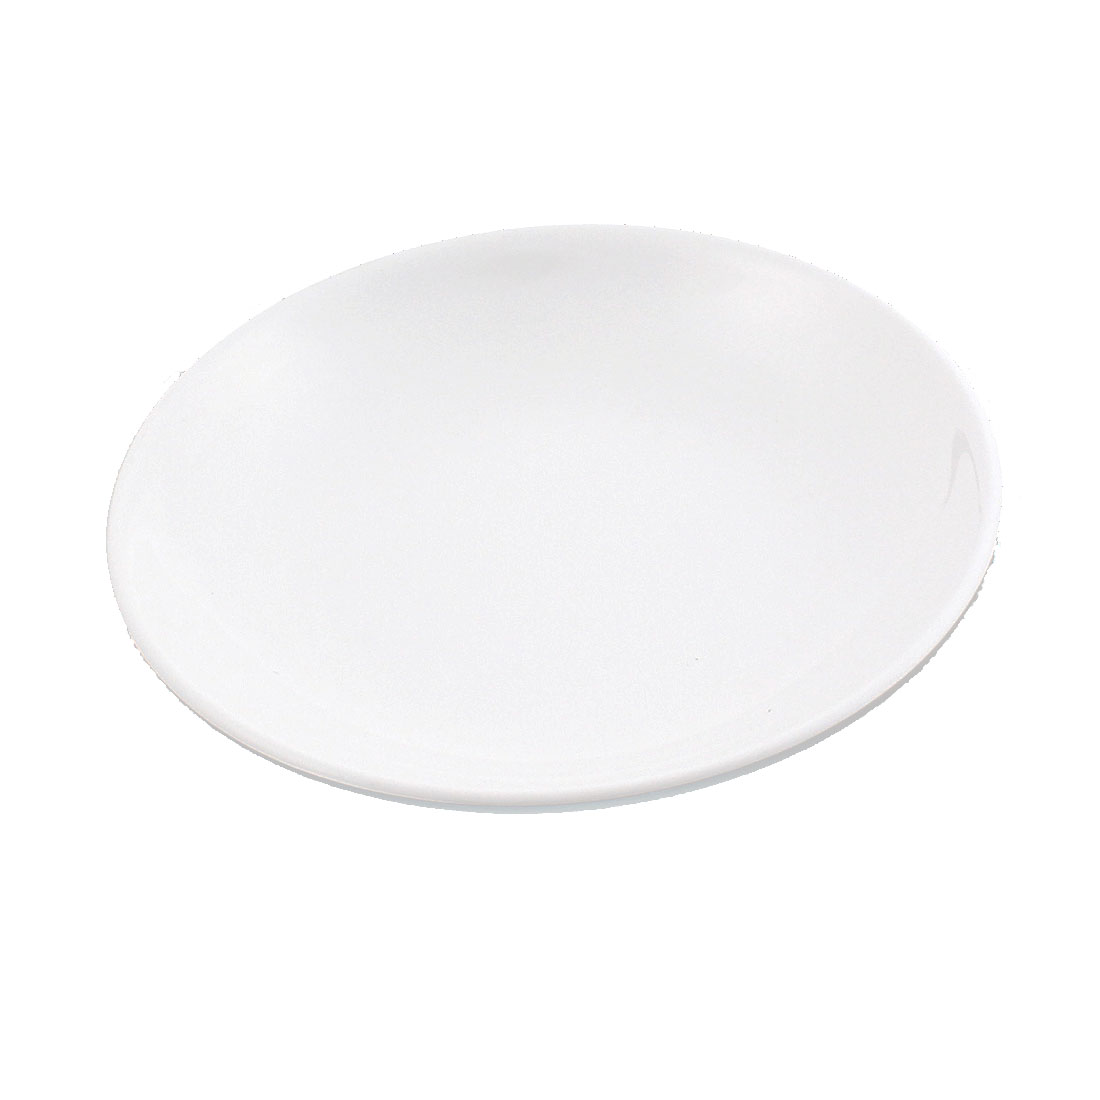 Food Oil Soy Sauce Wasabi Round Shape White Dish Plate 115mm Dia